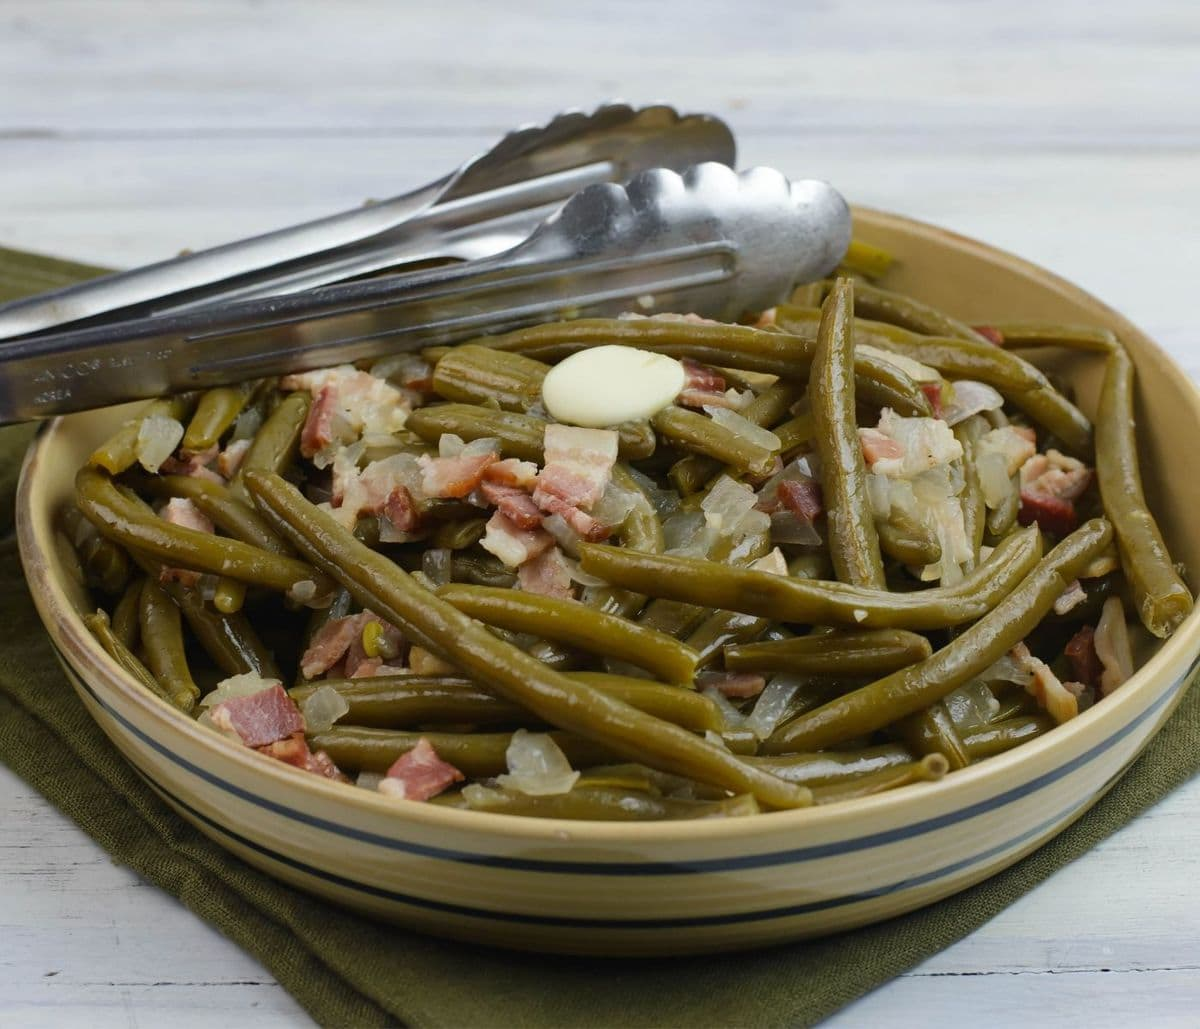 Serving bowl of green beans with bacon with a pair of tongs on the edge of the bowl.